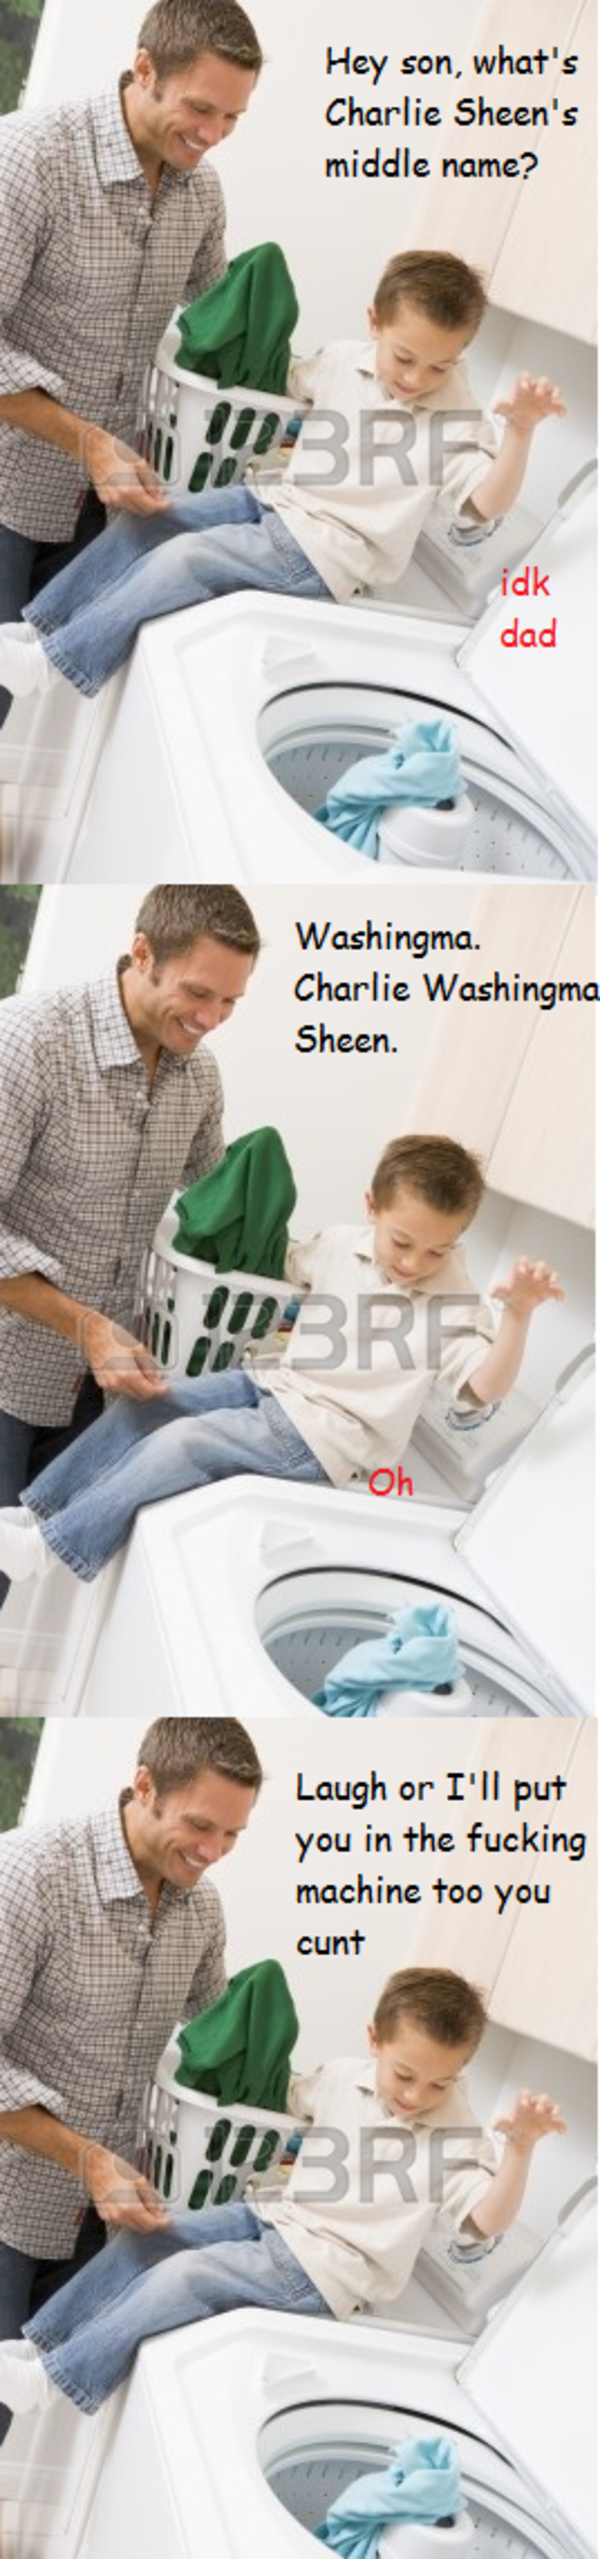 Funny Stock Photos Know Your Meme : Image captioned stock photos know your meme